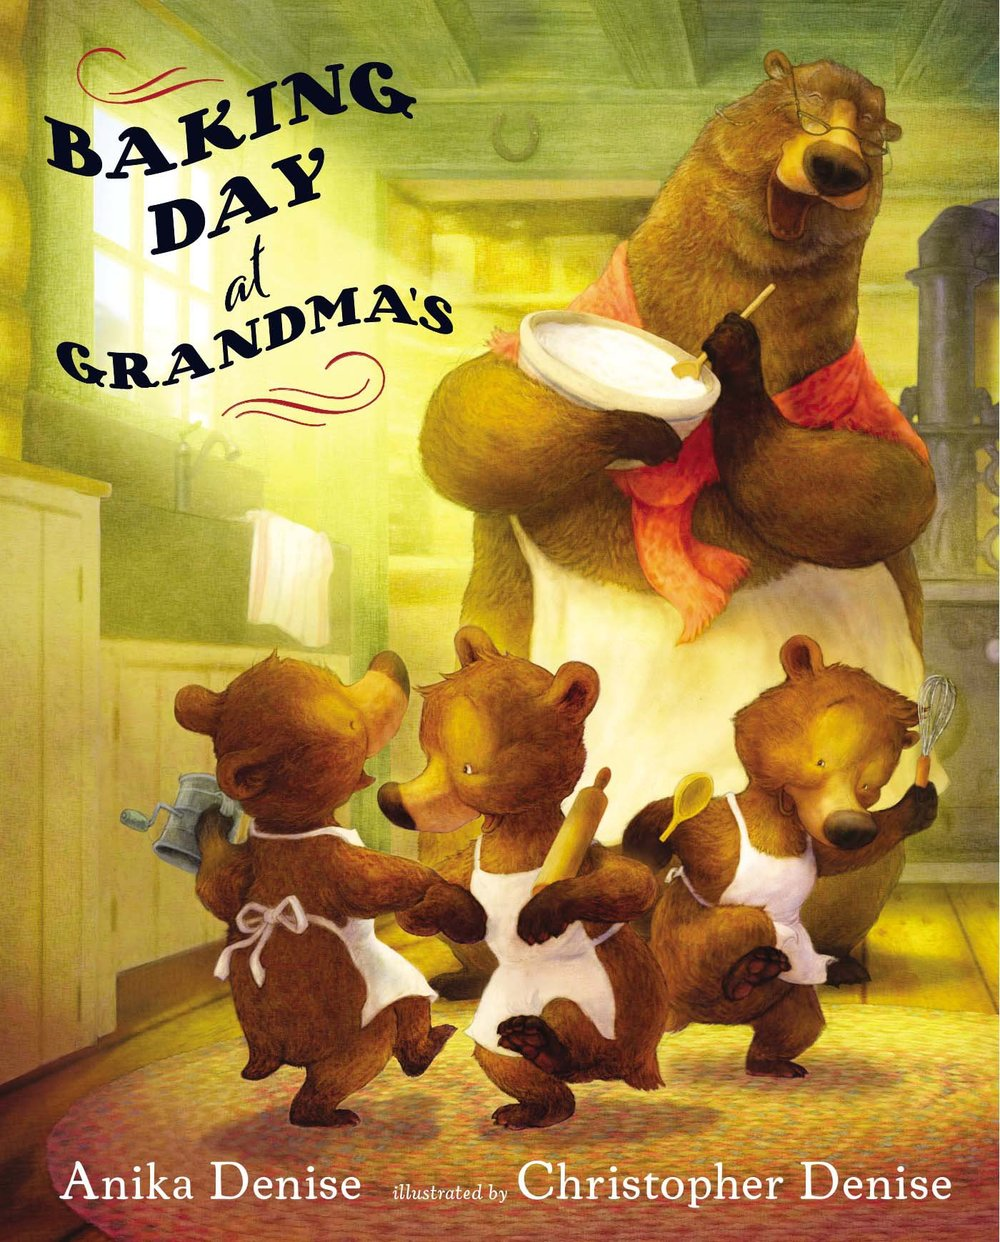 Baking Day at Grandma's by Anika Denise, illustrations by Christopher Denise